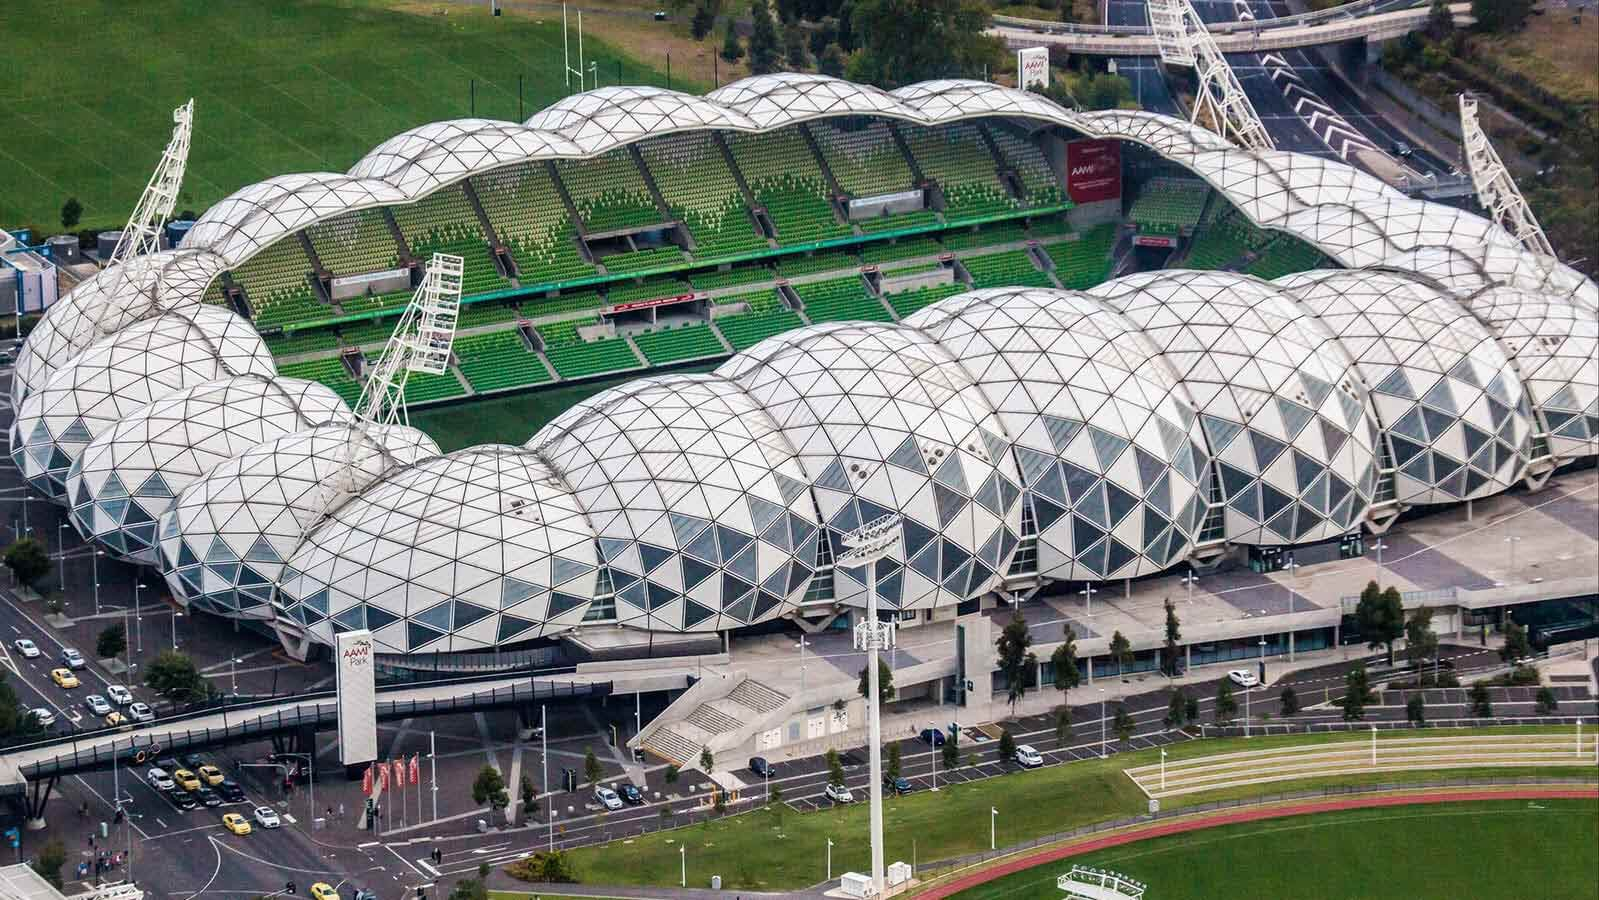 AAMI Park Stadium, Melbourne City, Victoria, Australia, 2010 by Cox Architects & Planners.